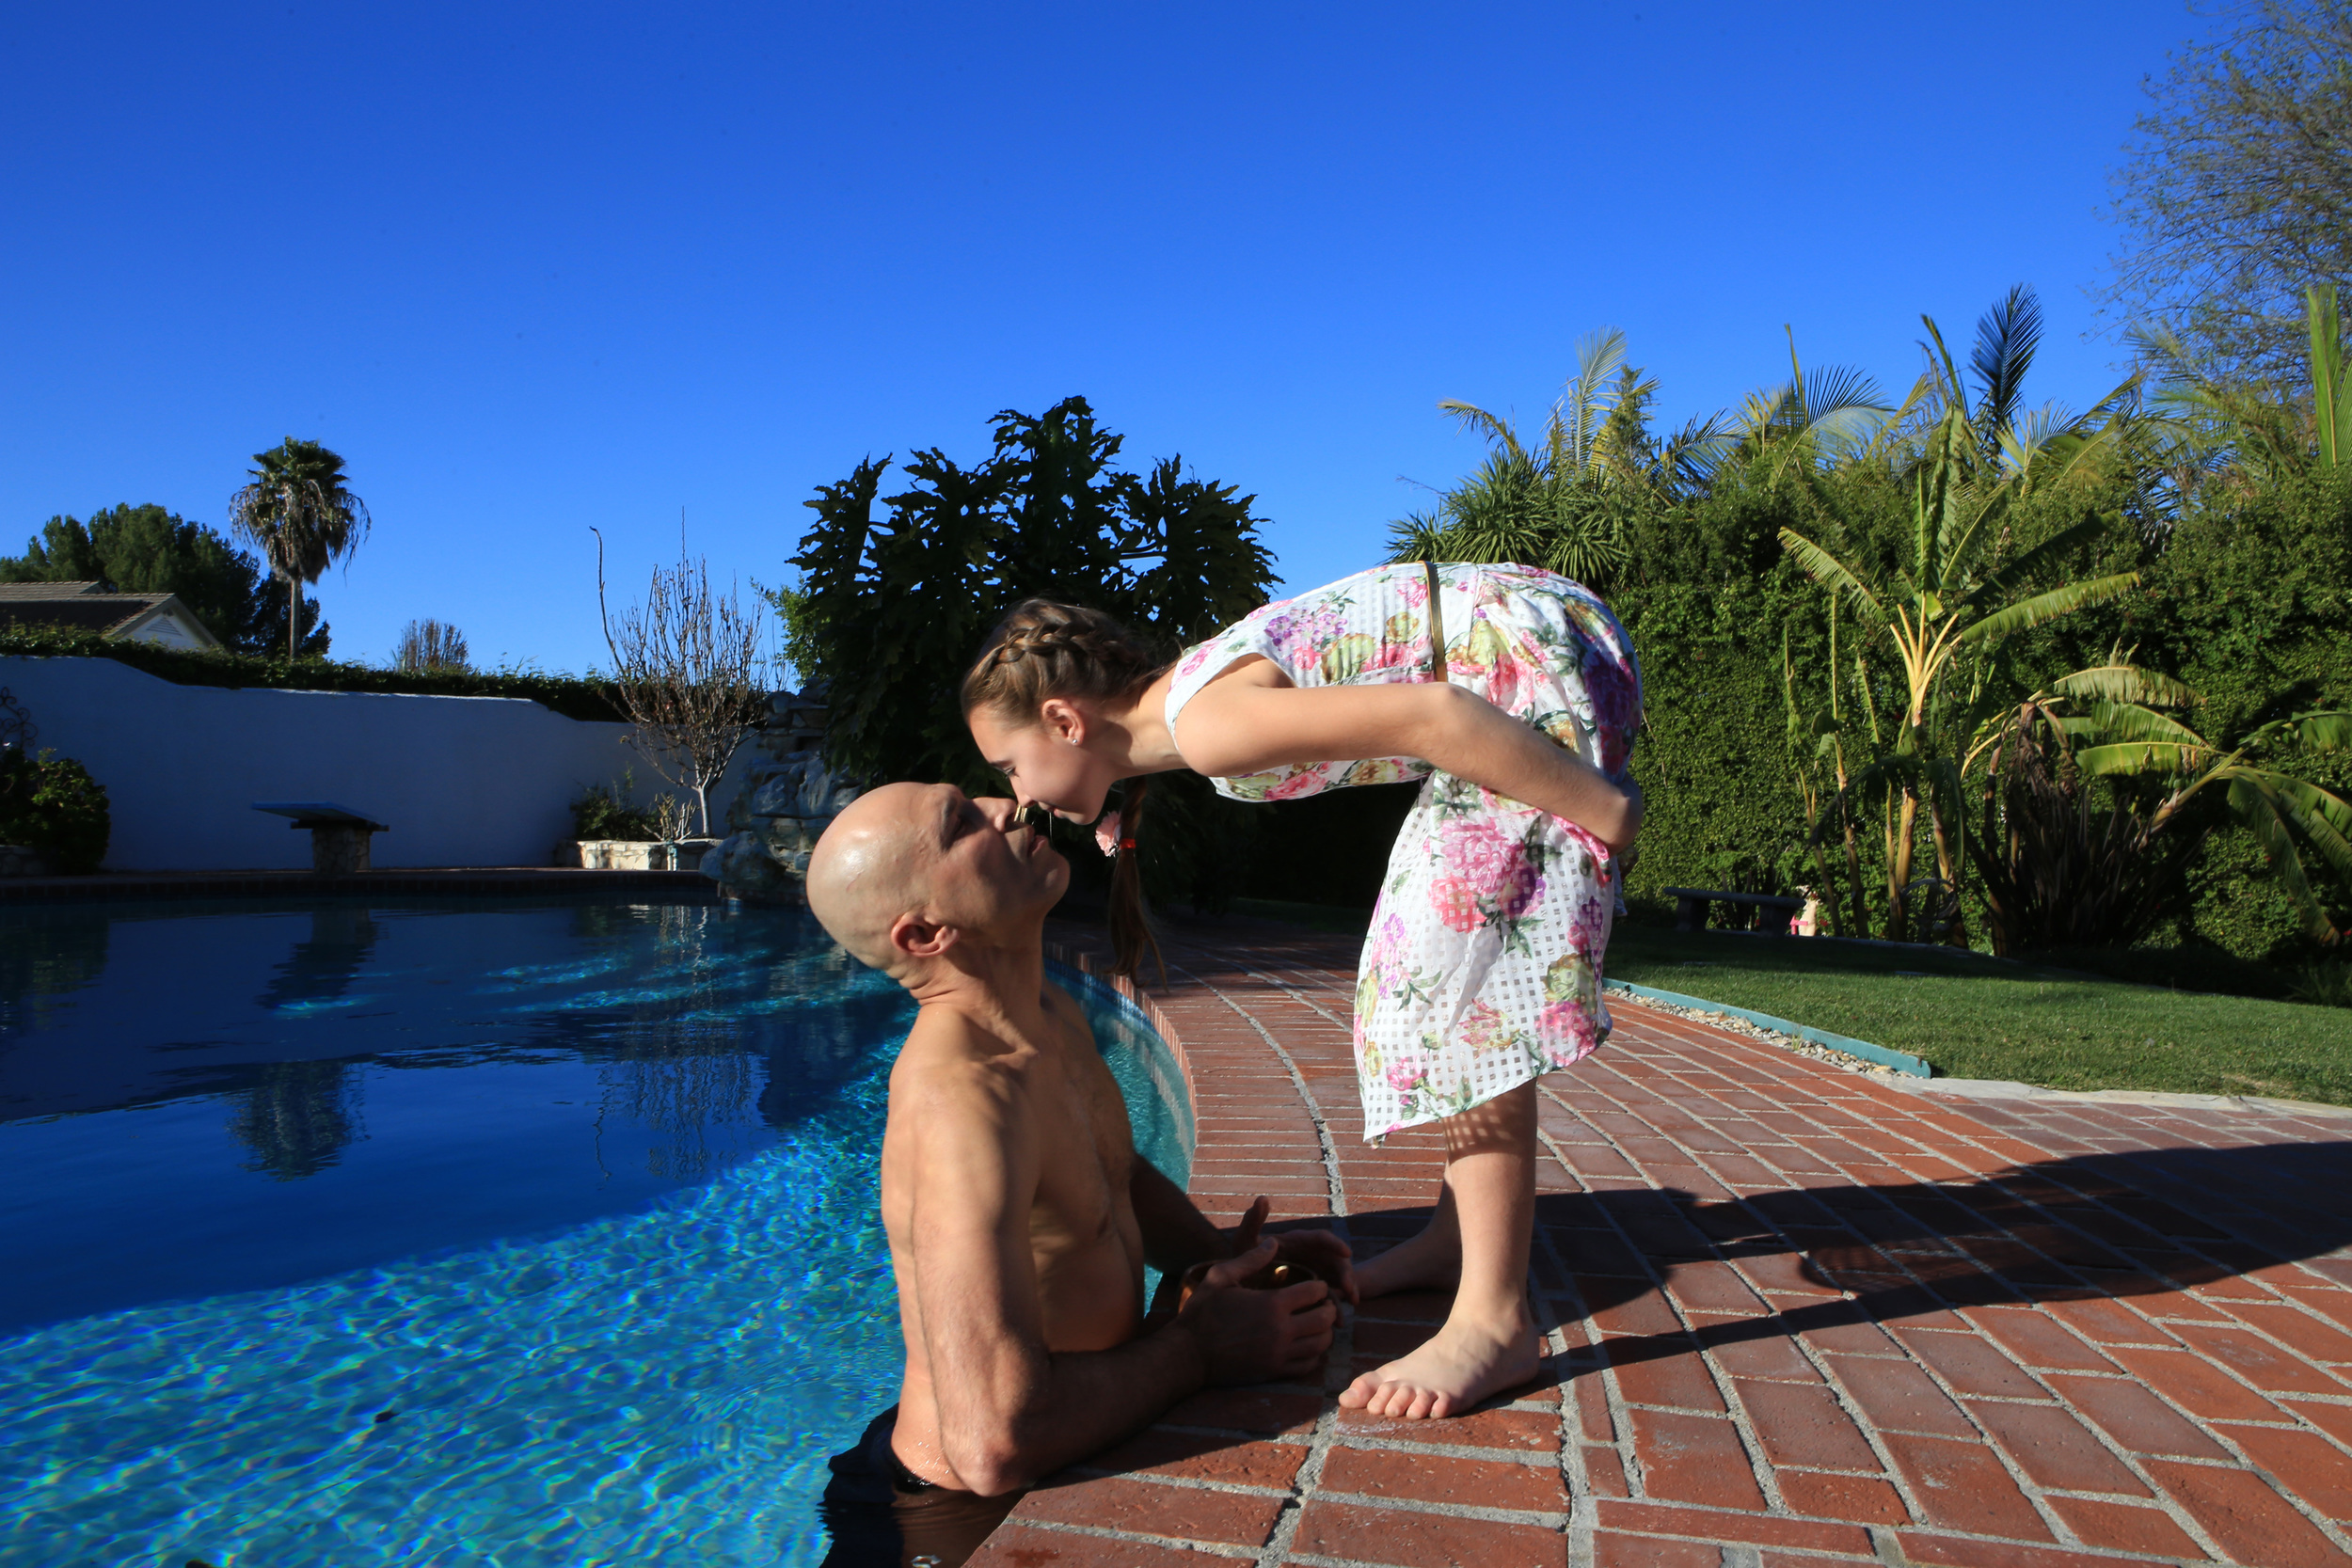 At his home in Palos Verdes Estates, CA, Gracie stands up to his waist for several minutes icing his legs and spine in their family pool after a strenuous day of training and sparing and is greeted by his 10-year-old daughter, Kharianna, who has just returned home from school and music lessons. (©Gail Fisher for ESPN)